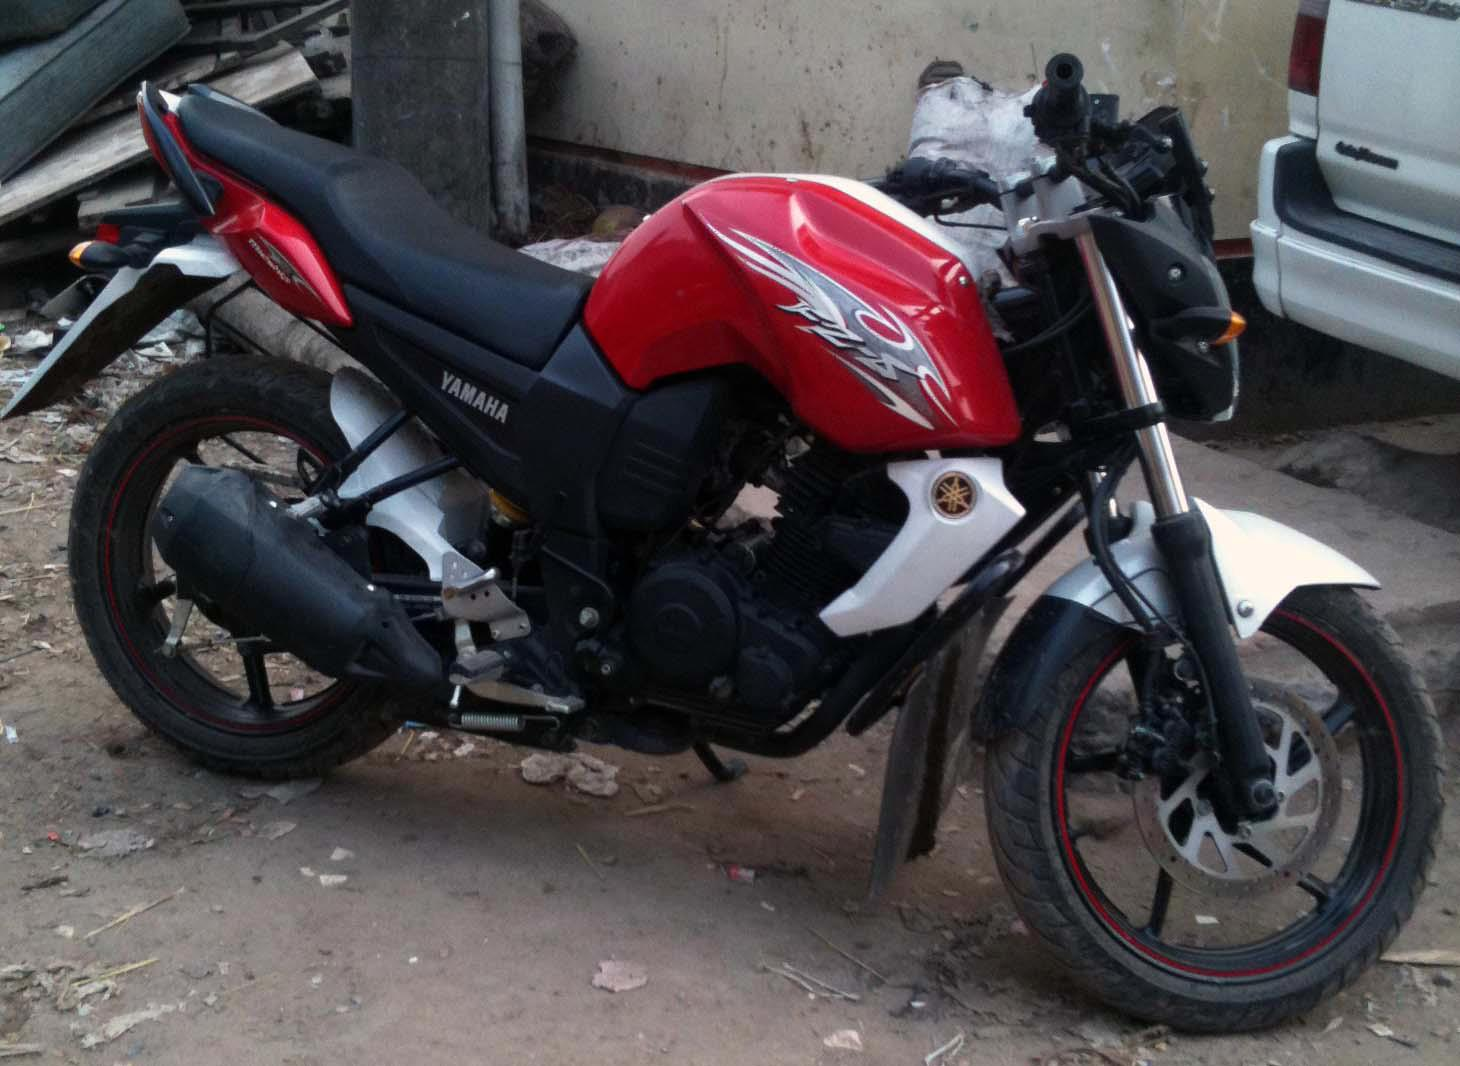 yamaha fzs red 2012 lastest model showroom condition   ClickBD large    Yamaha Fzs 2012